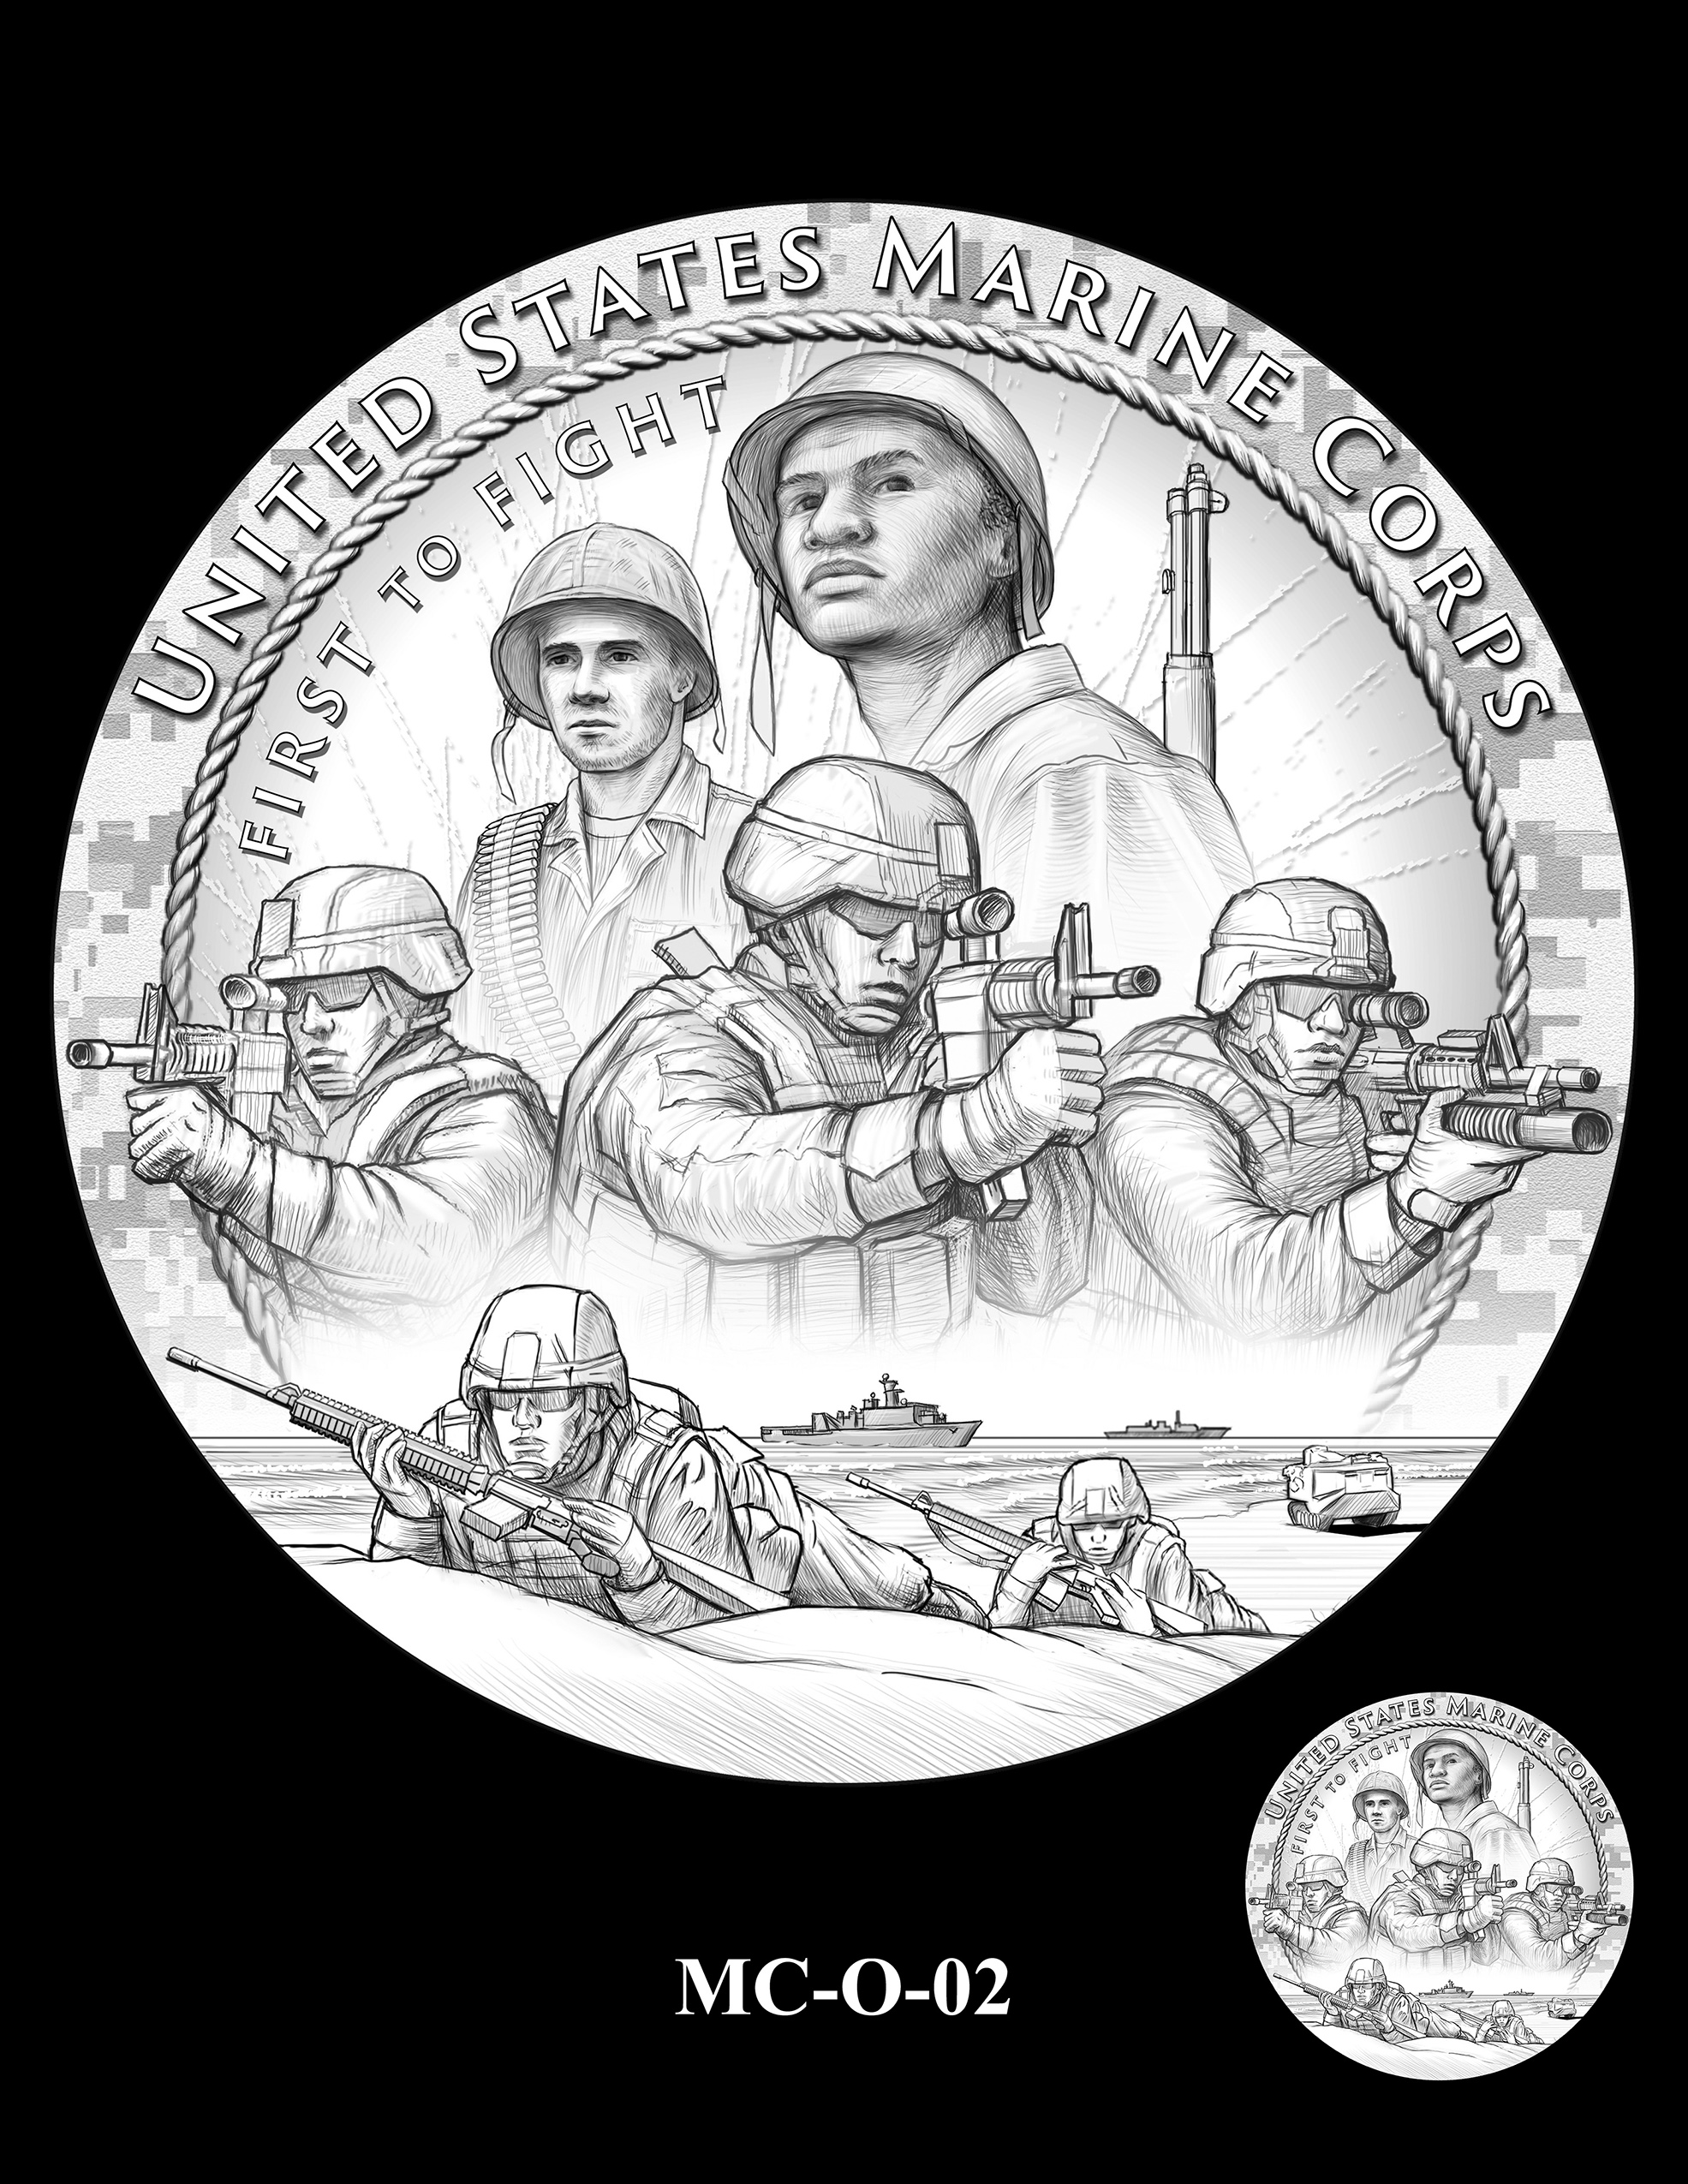 MC-O-02 -- United States Marine Corps Silver Medal